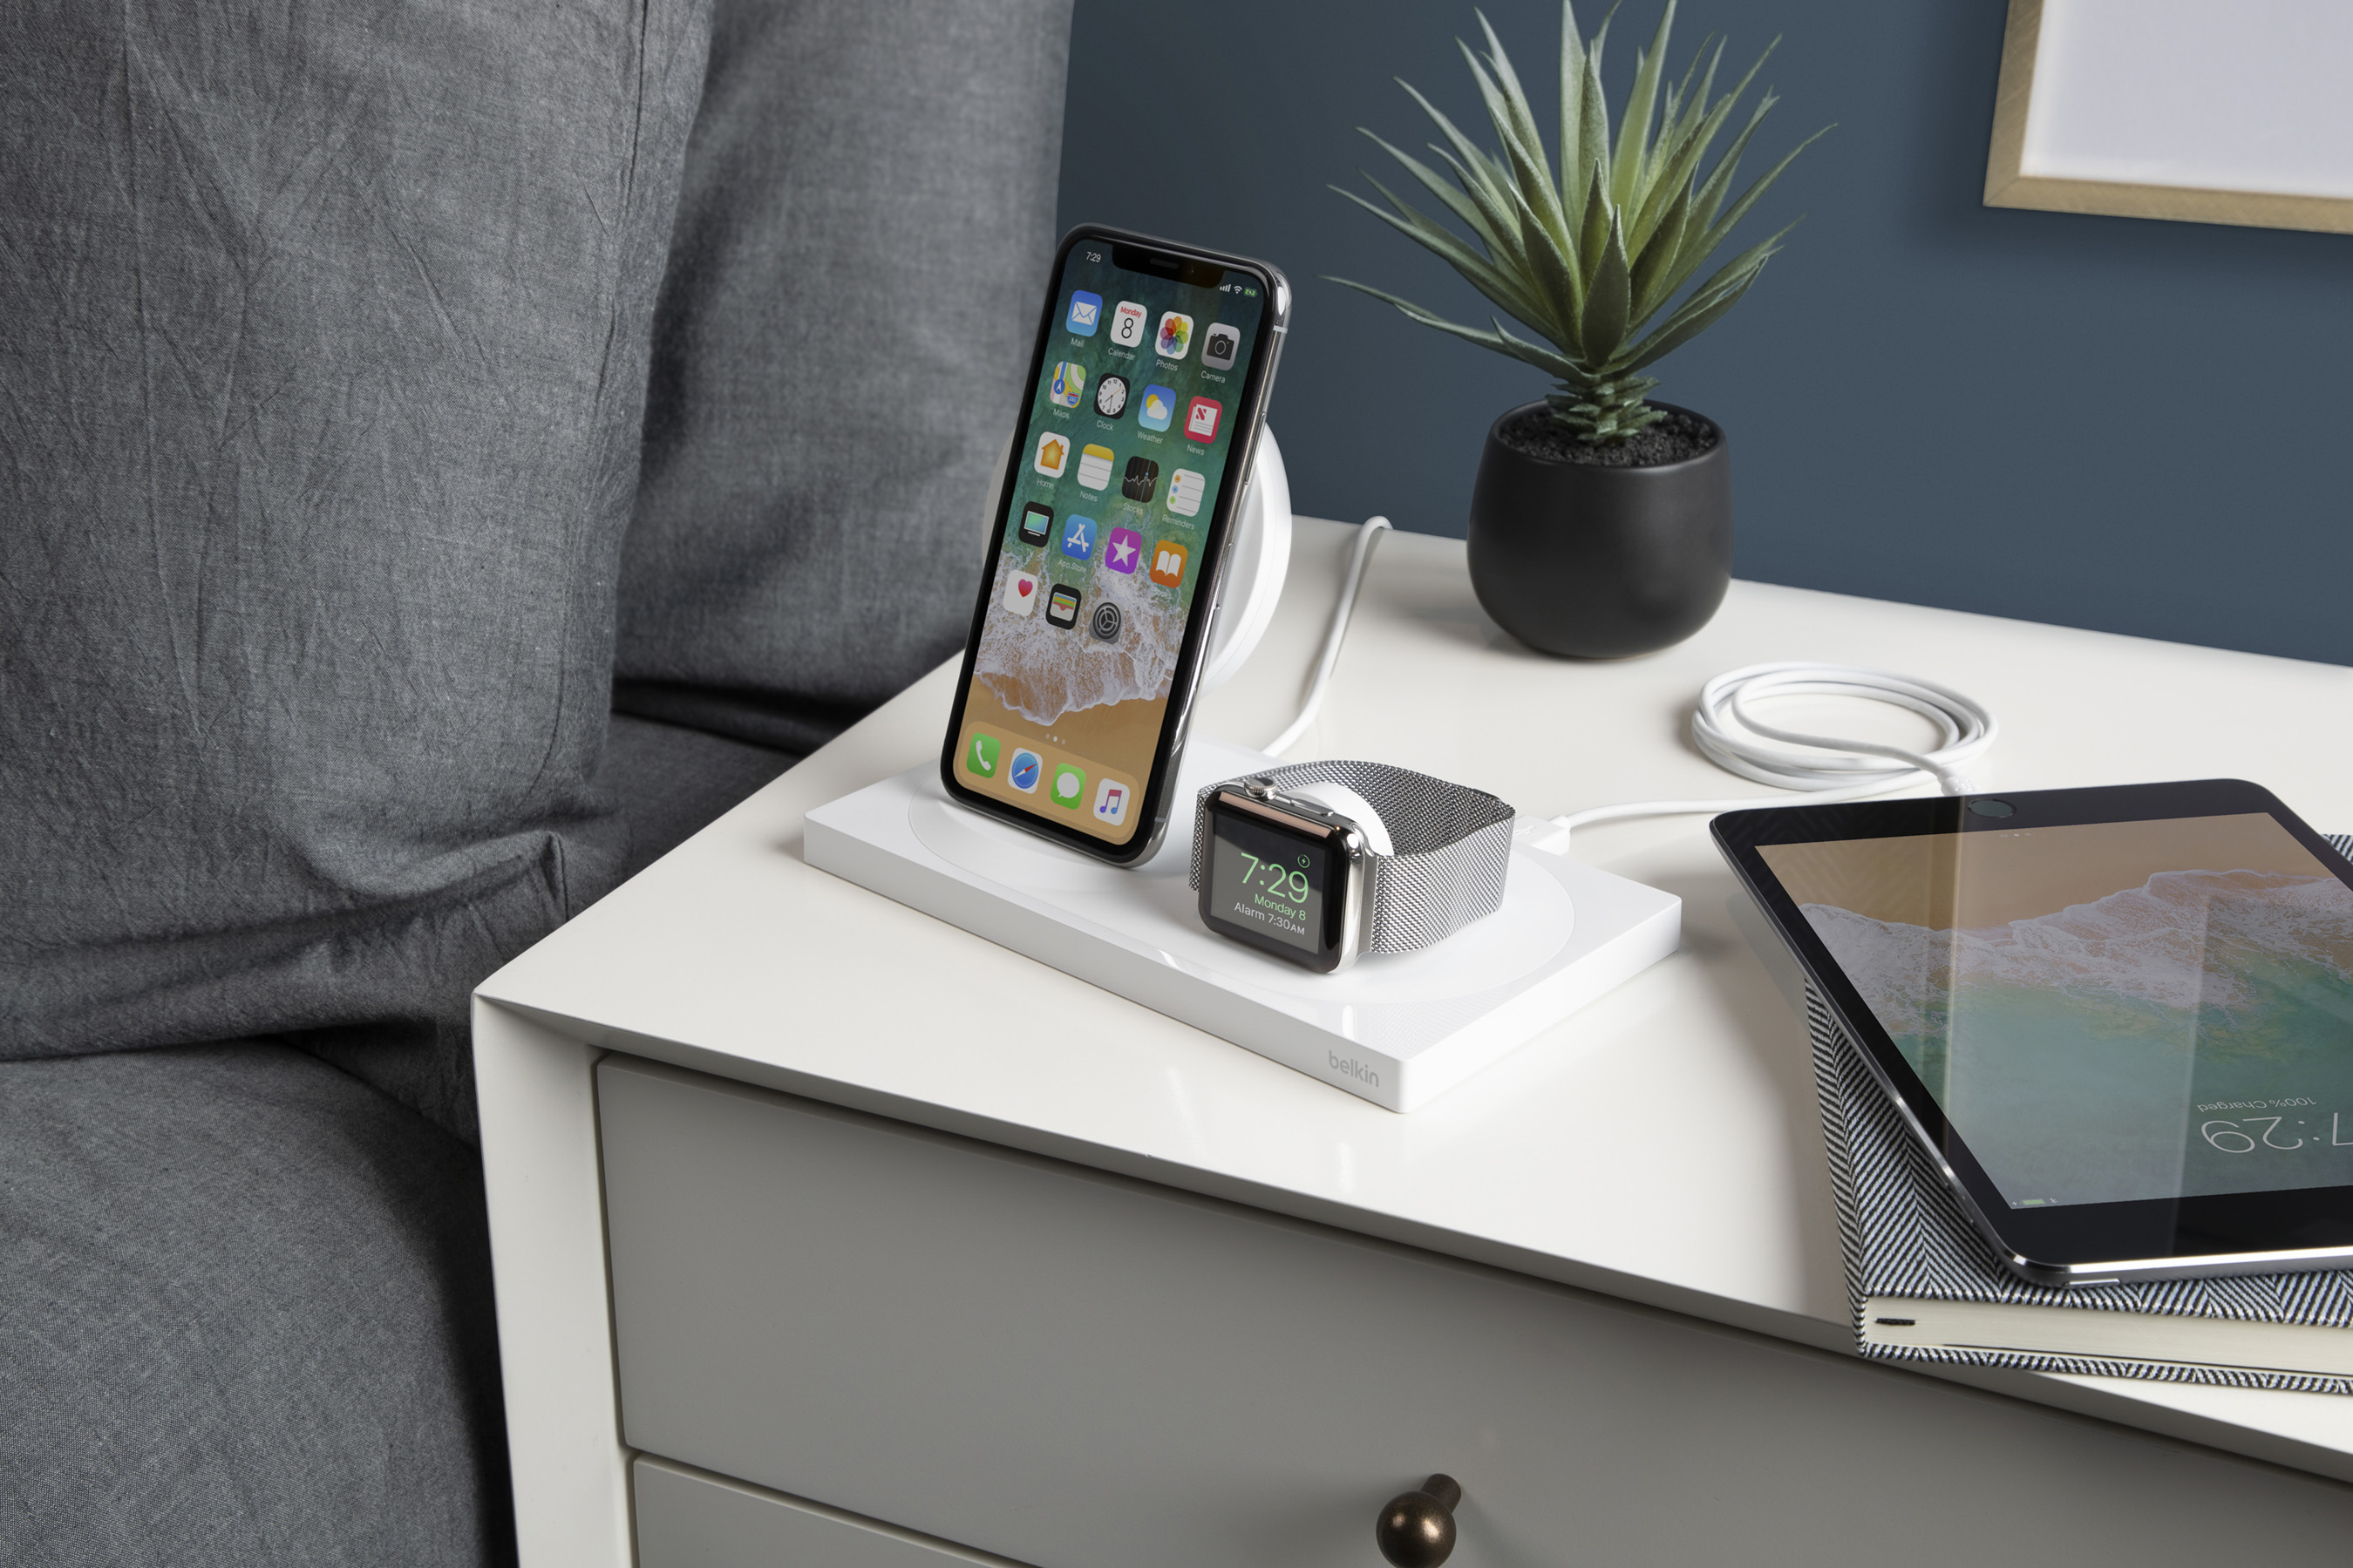 BOOSTUP Wireless Charging Dock for Apple Watch and iPhone